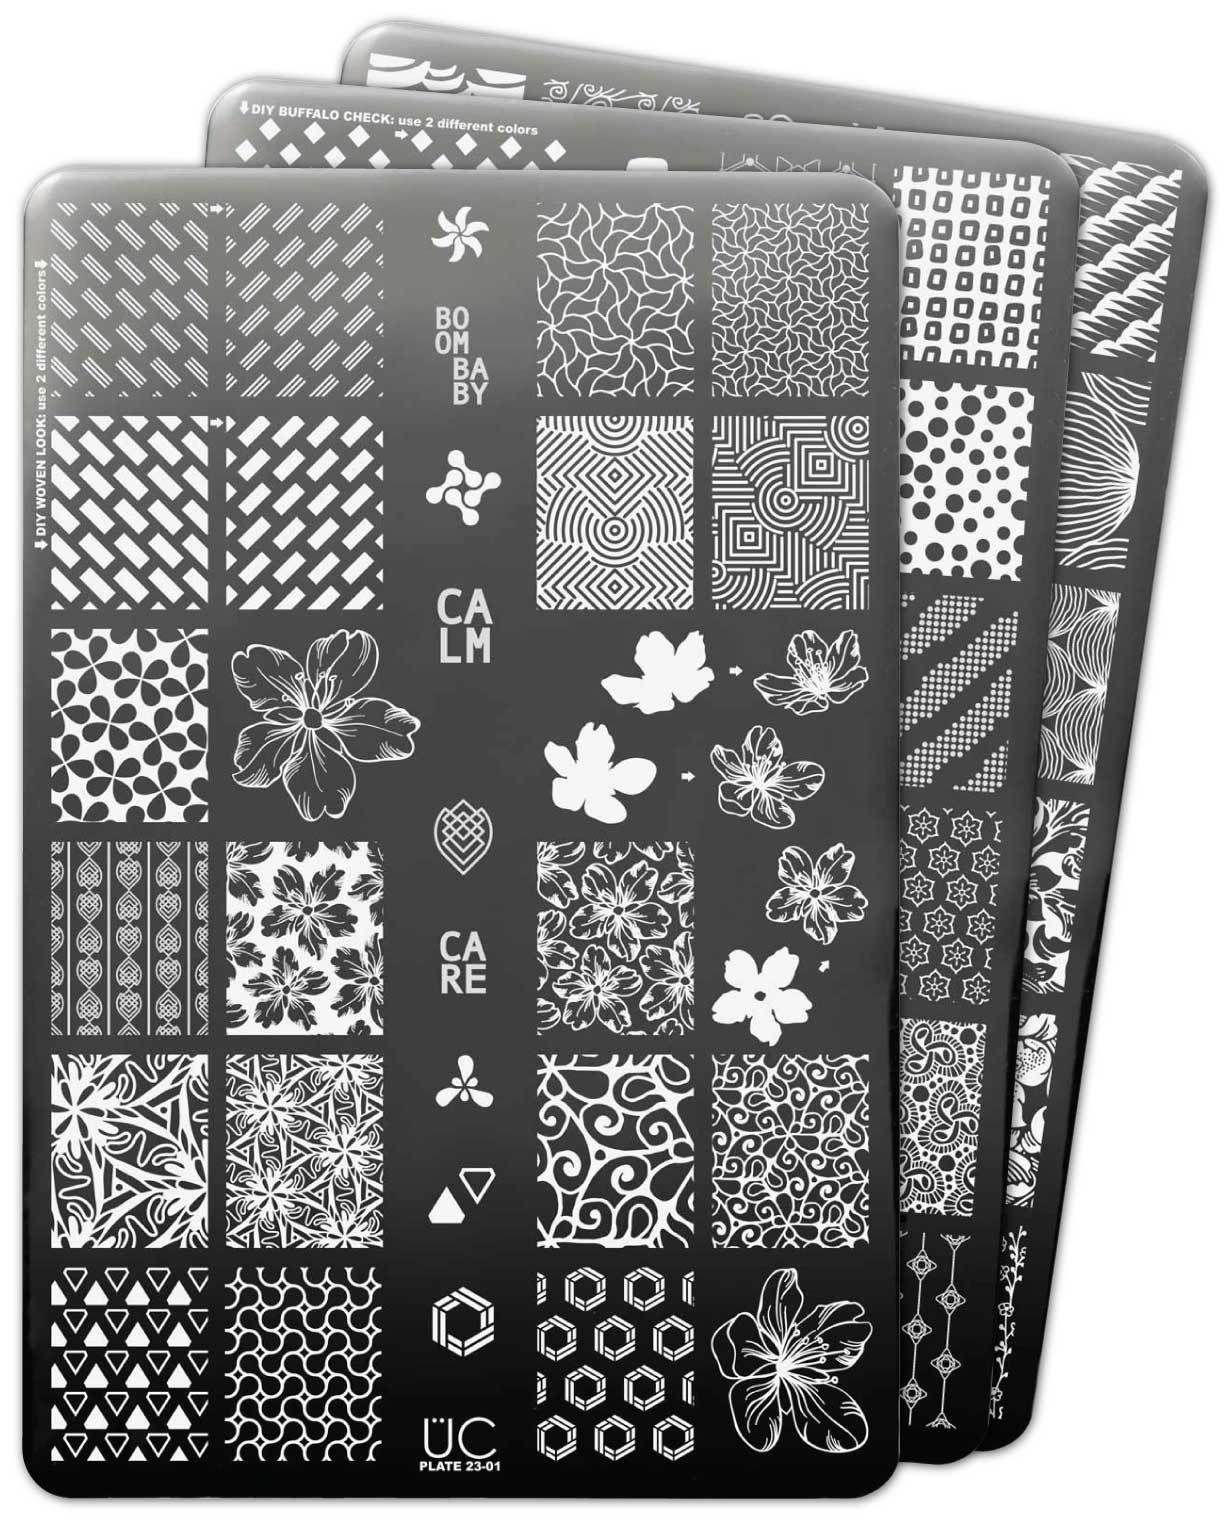 5c977183e12 This 3 stamping plate set has loads of beautiful designs and patterns like  hibiscus flowers, geometric patterns, floating flowers, dotted designs, ...